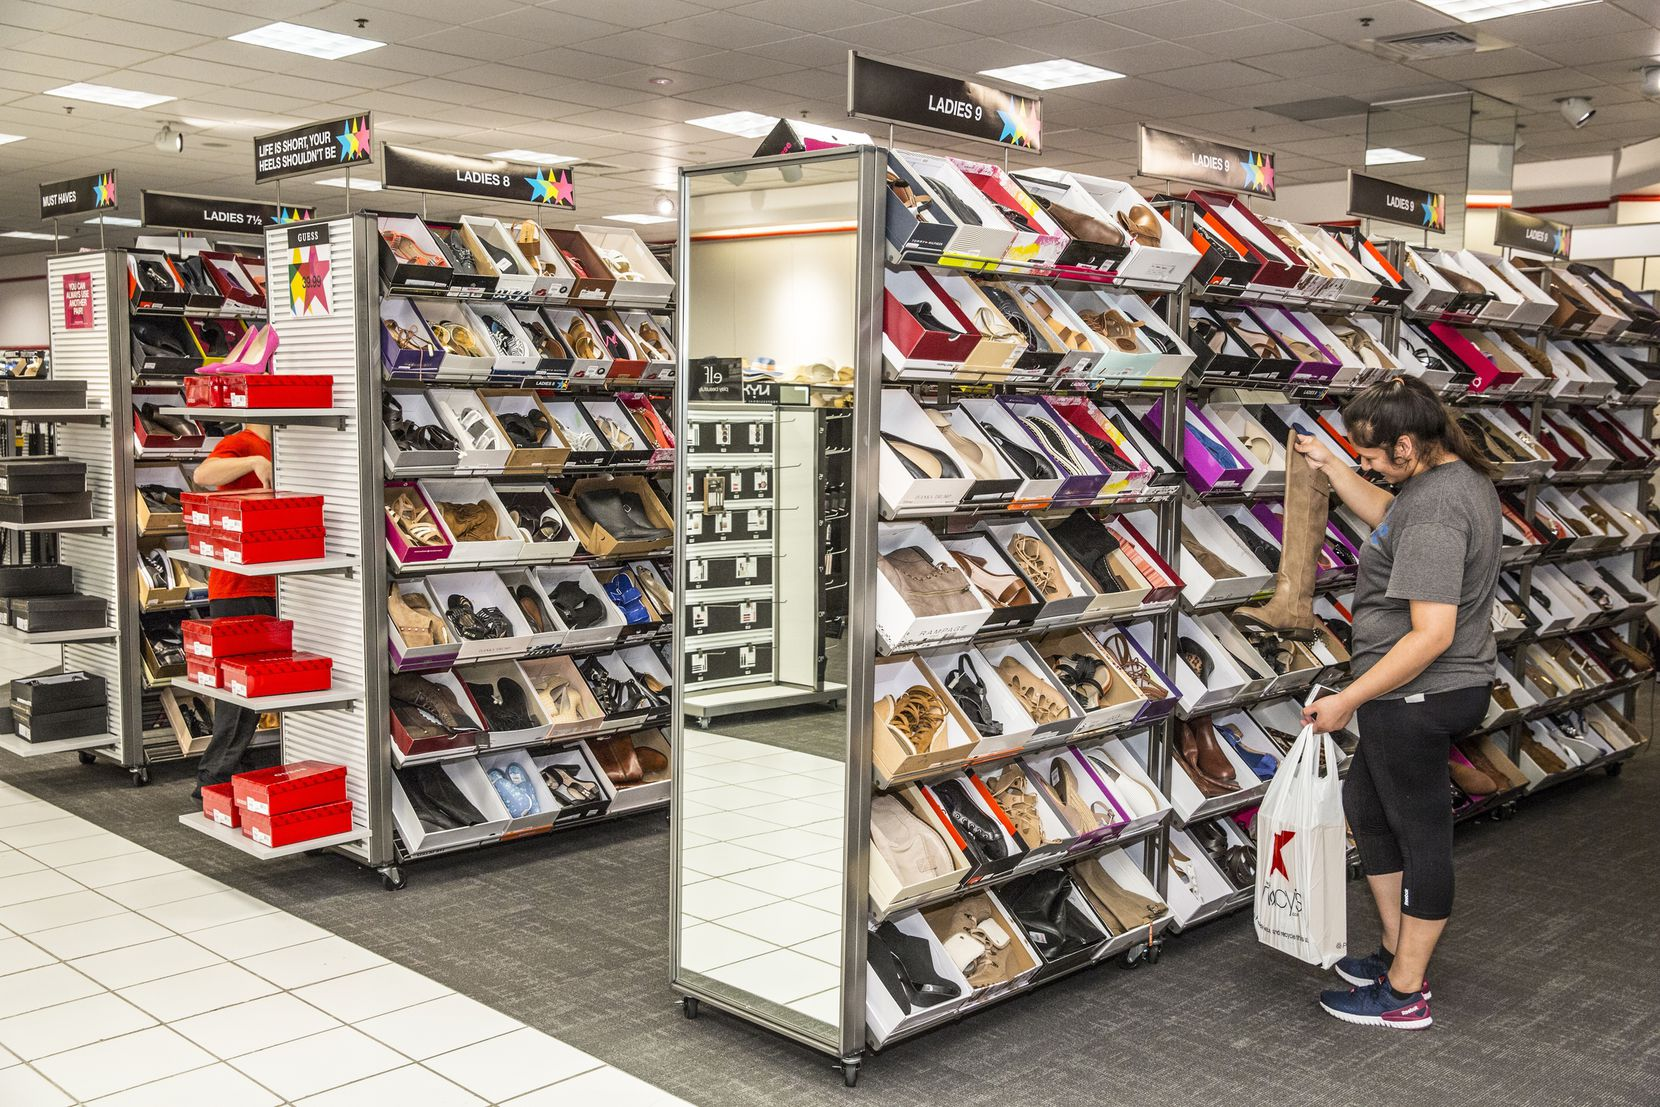 Carmen Patlan shopping for women's shoes in the new Macy's Backstage Town East Mall which features an expanded assortment of shoes for kids, women and men as well as home décor, bath and beauty products, toys, tech, gadgets and more. (Shannon Faulk/AP Images for Macy's)